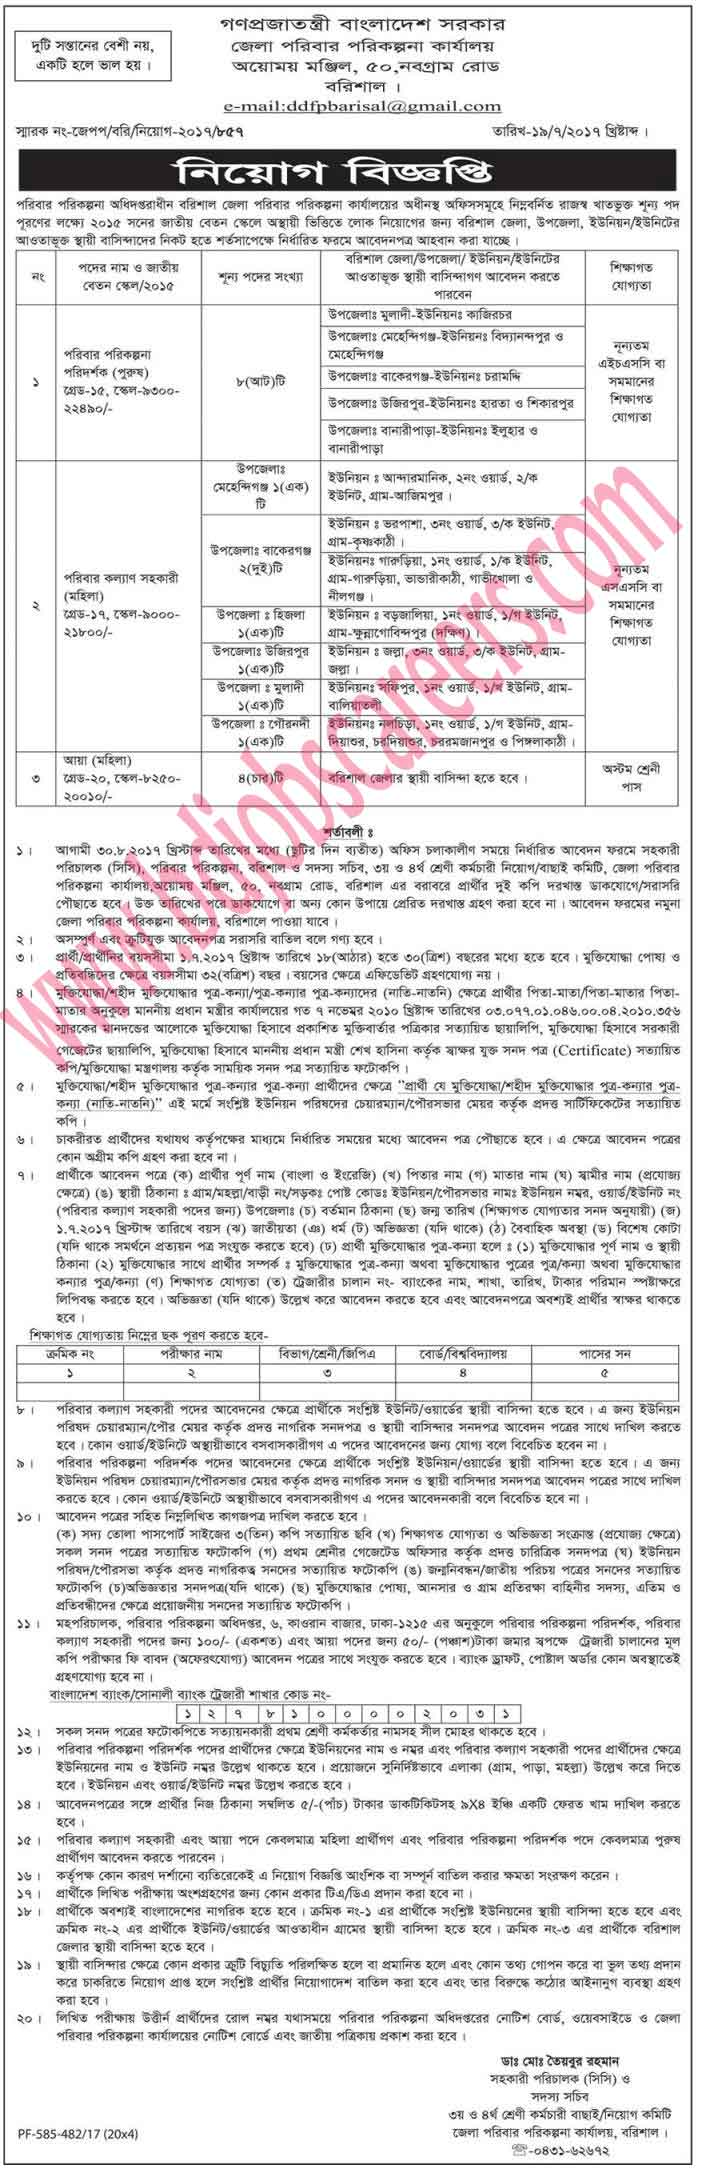 Barisal District Family Planning Office Job Circular 2017